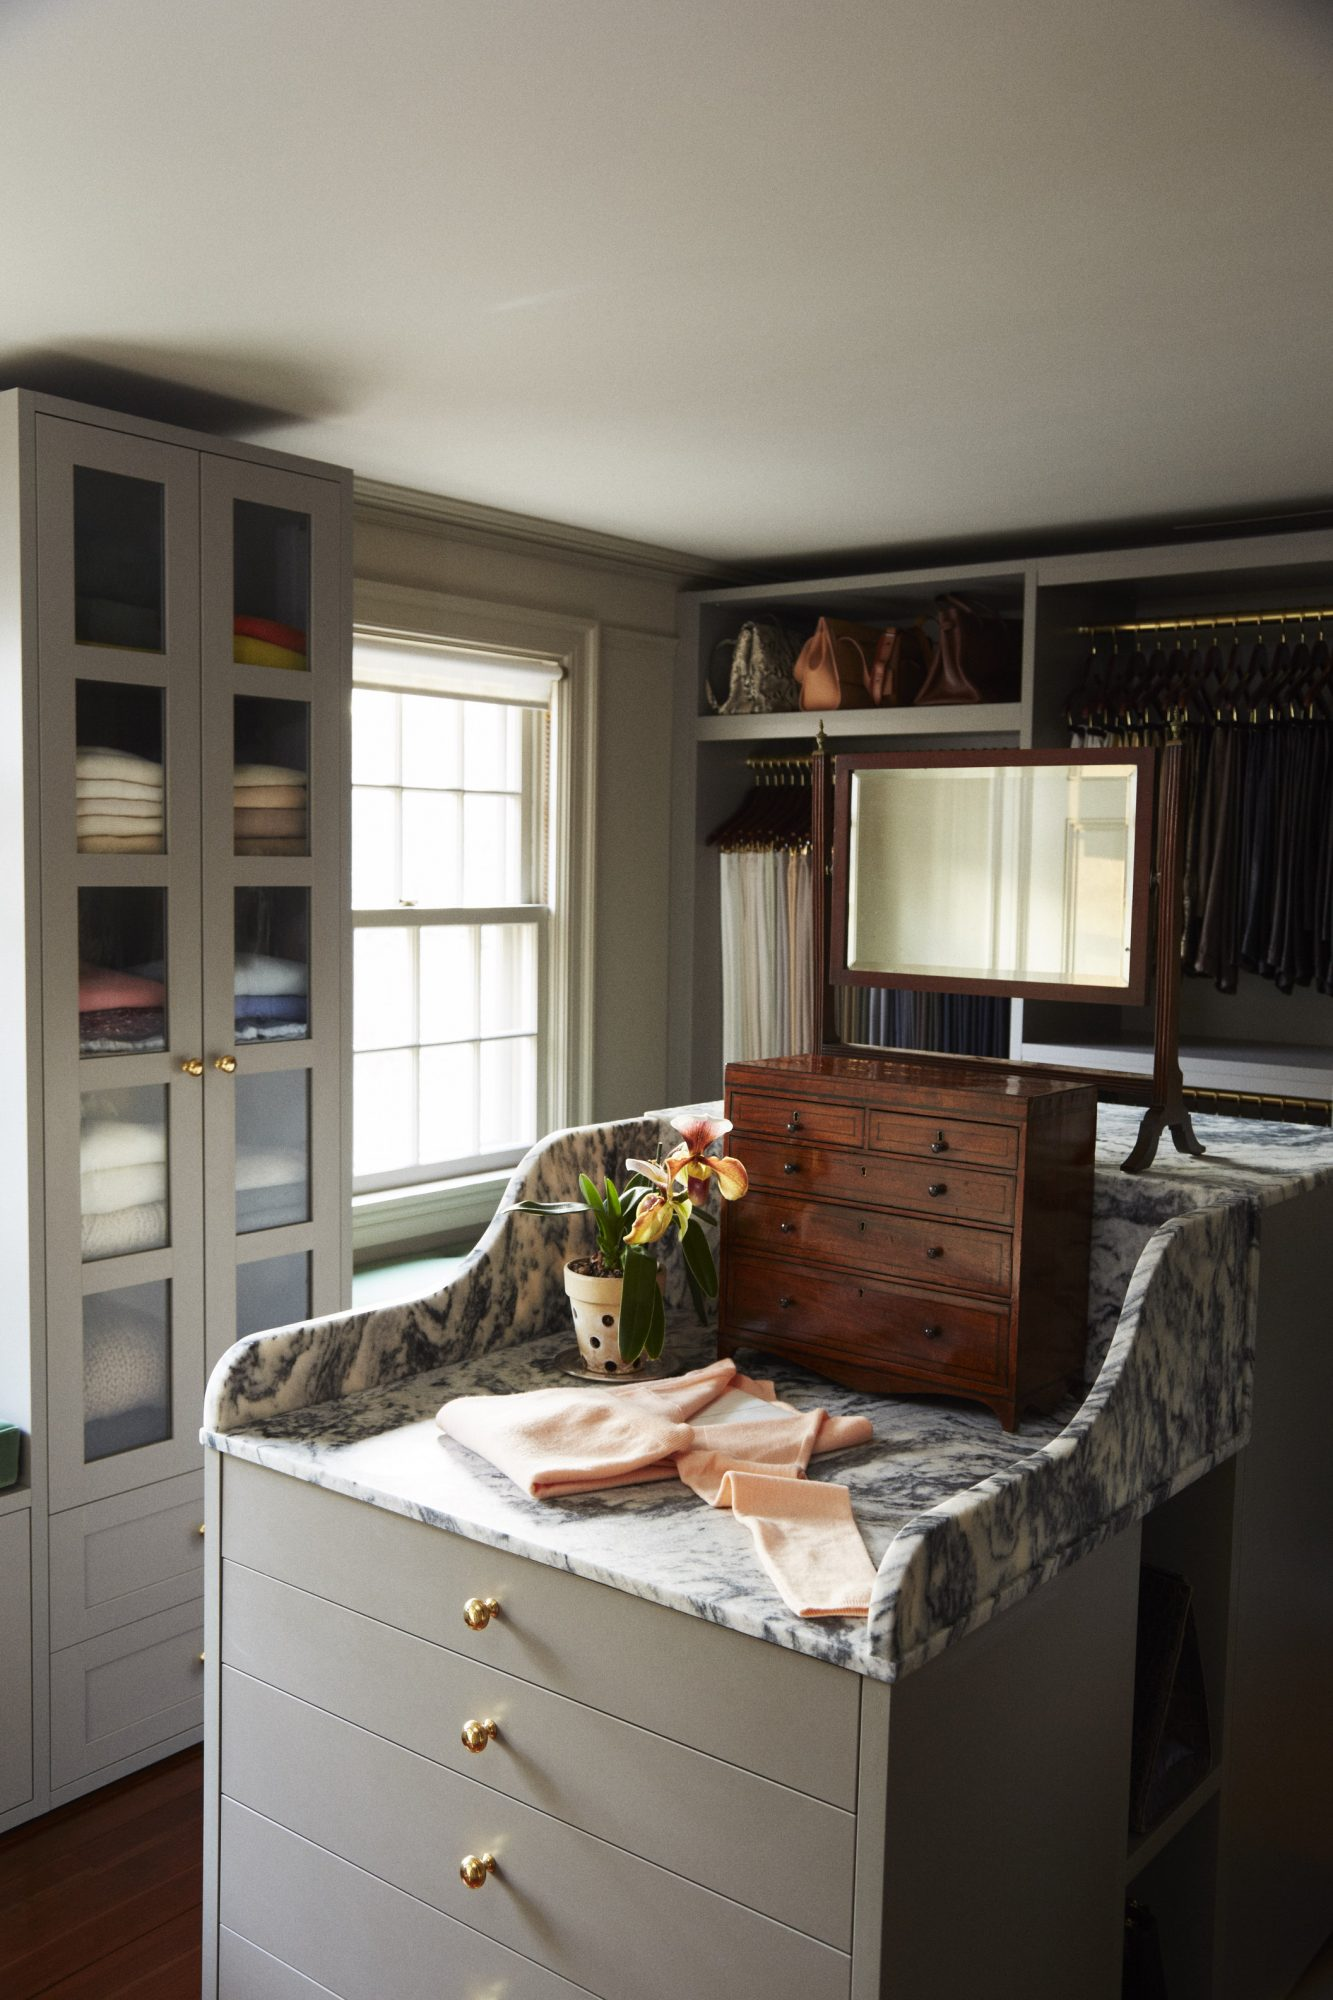 See Inside Martha Stewart's Meticulous (and Massive!) Walk-in Closet msl-closet-12-19-17-mn-6487417-511